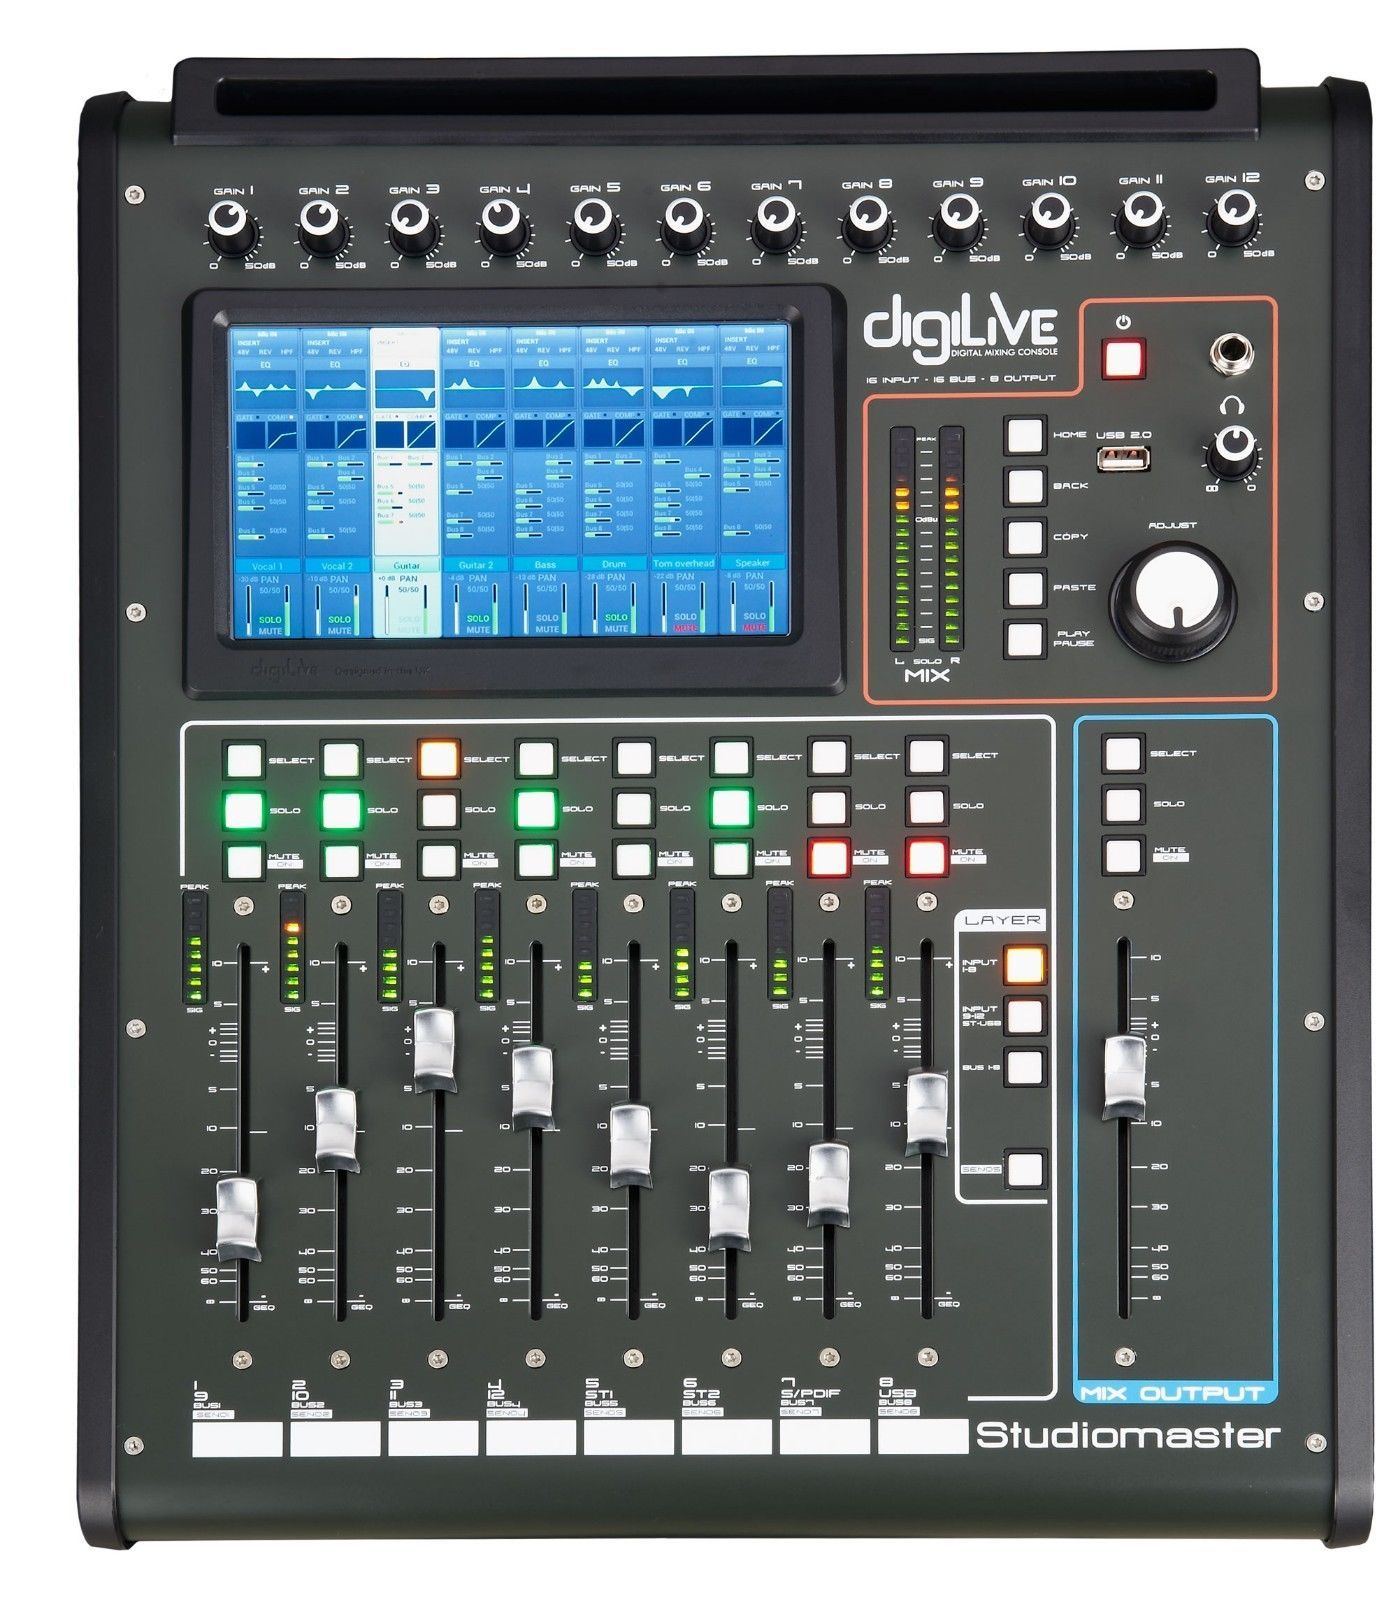 studiomaster digilive16 16 input 16 bus 8 output hybrid digital mixer new. Black Bedroom Furniture Sets. Home Design Ideas